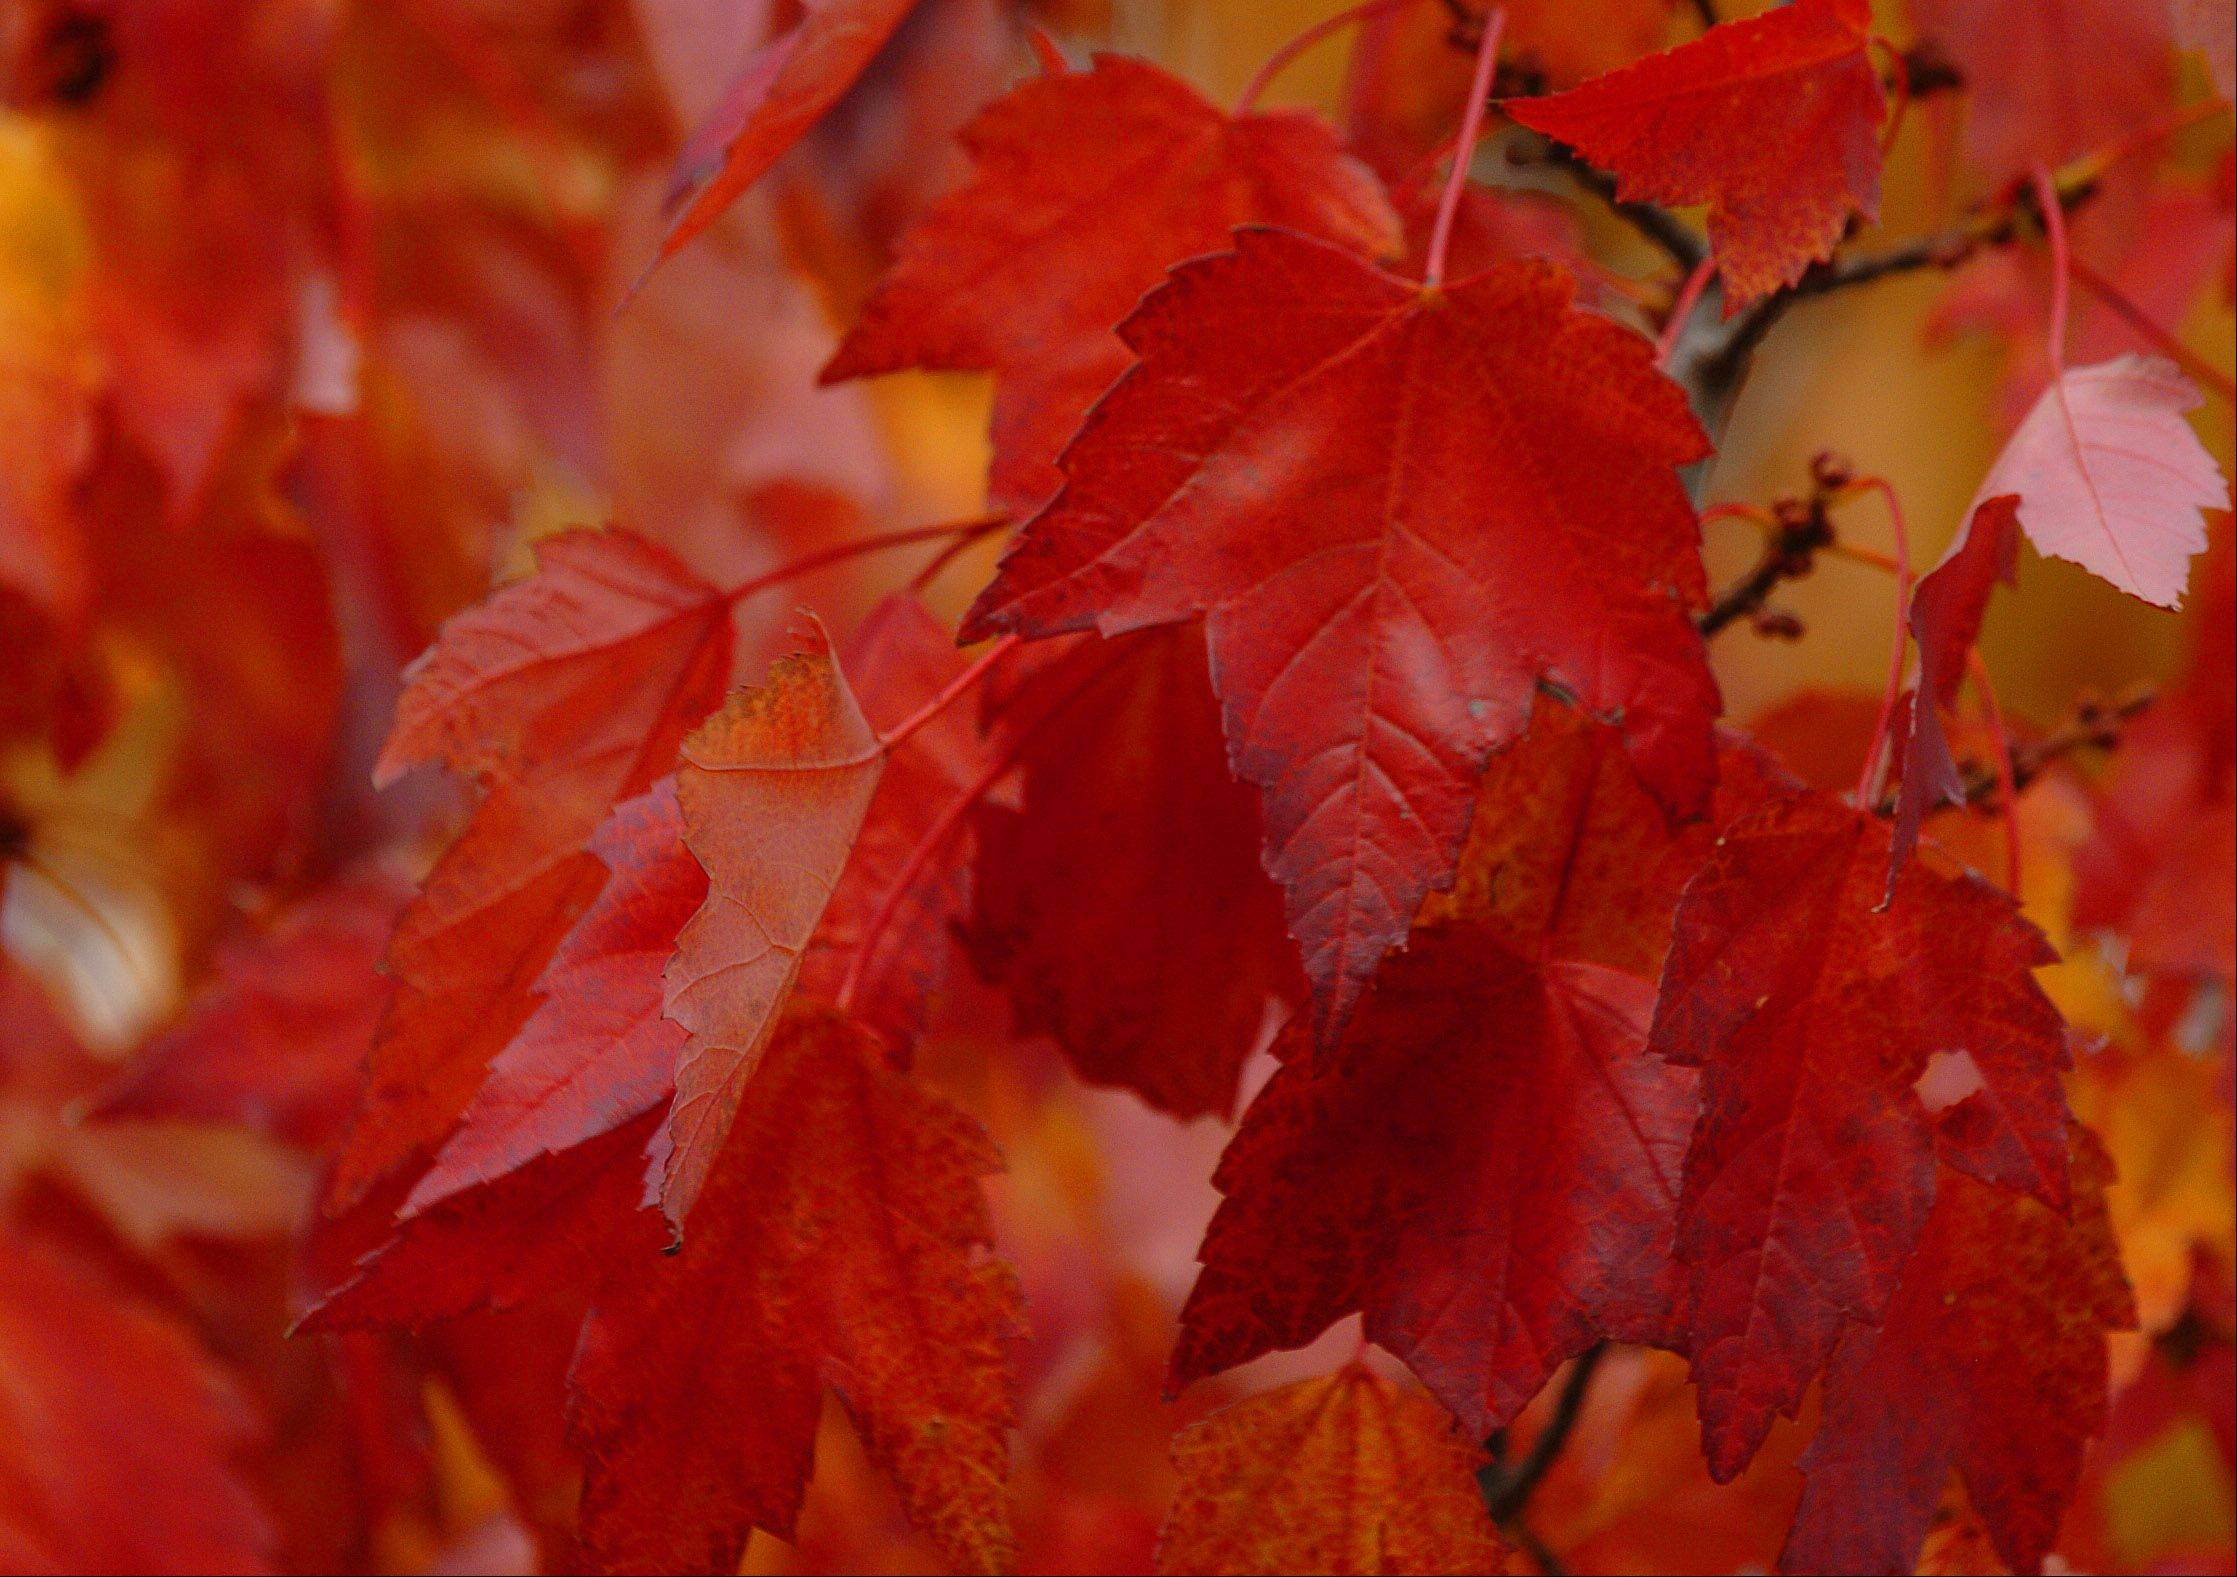 Maple leafs show their color at the Morton Arboretum in Lisle. Peak color is expected to be this week.